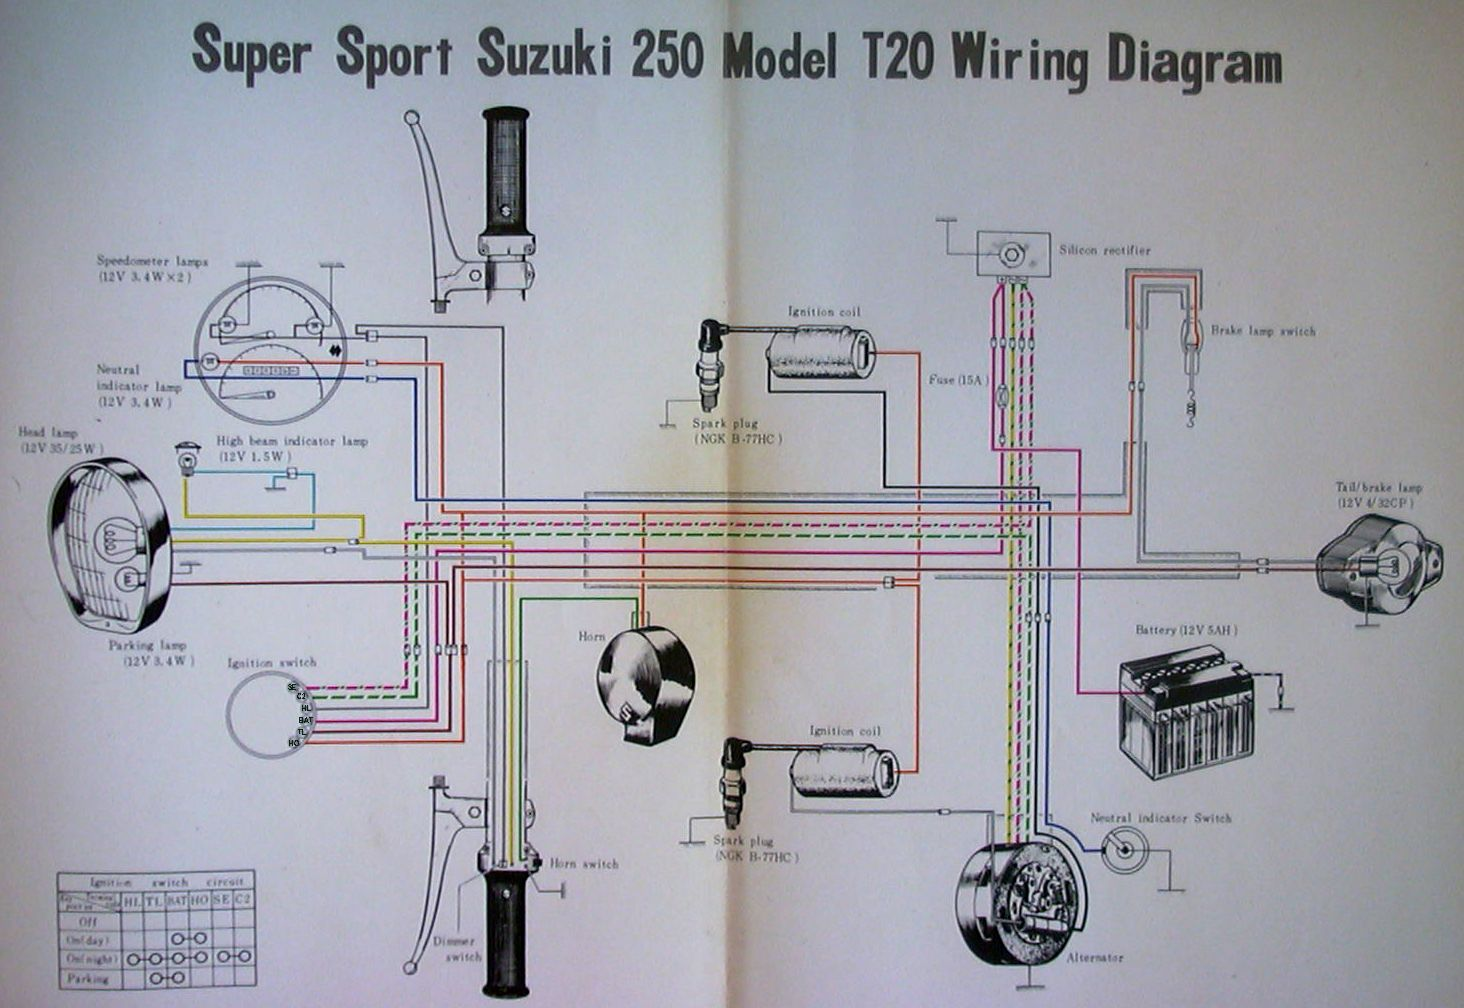 hight resolution of suzuki wiring schematics wiring diagram name suzuki wiring diagram motorcycle suzuki electrical diagram wiring diagram expert